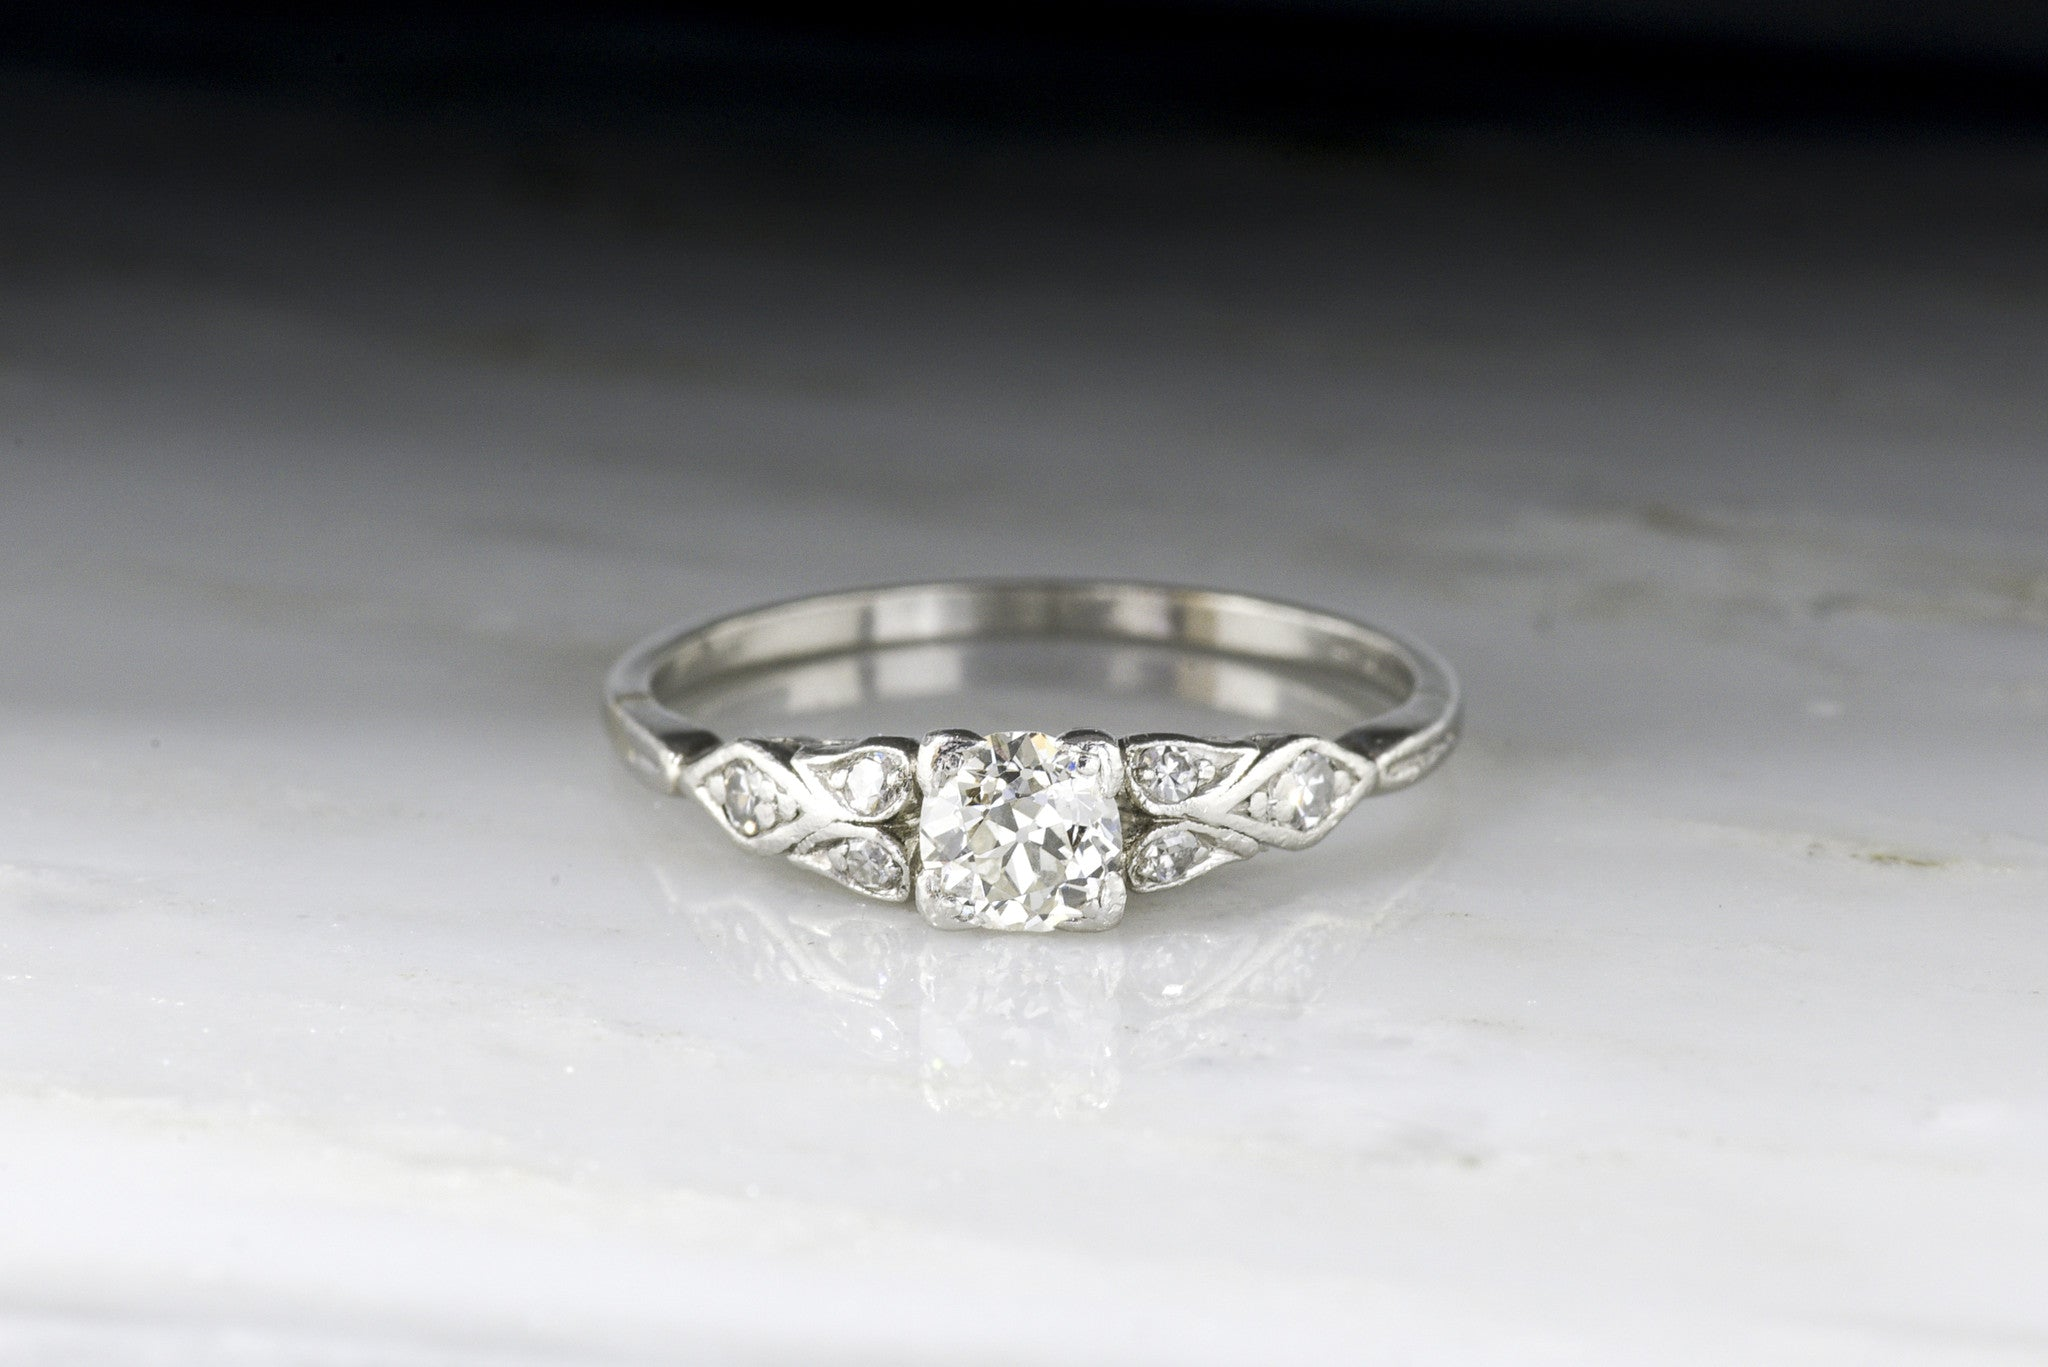 d7f51ef57f C. 1930s-1940s Engagement Ring; Art Deco Era with Early Retro Design a -  Pebble and Polish